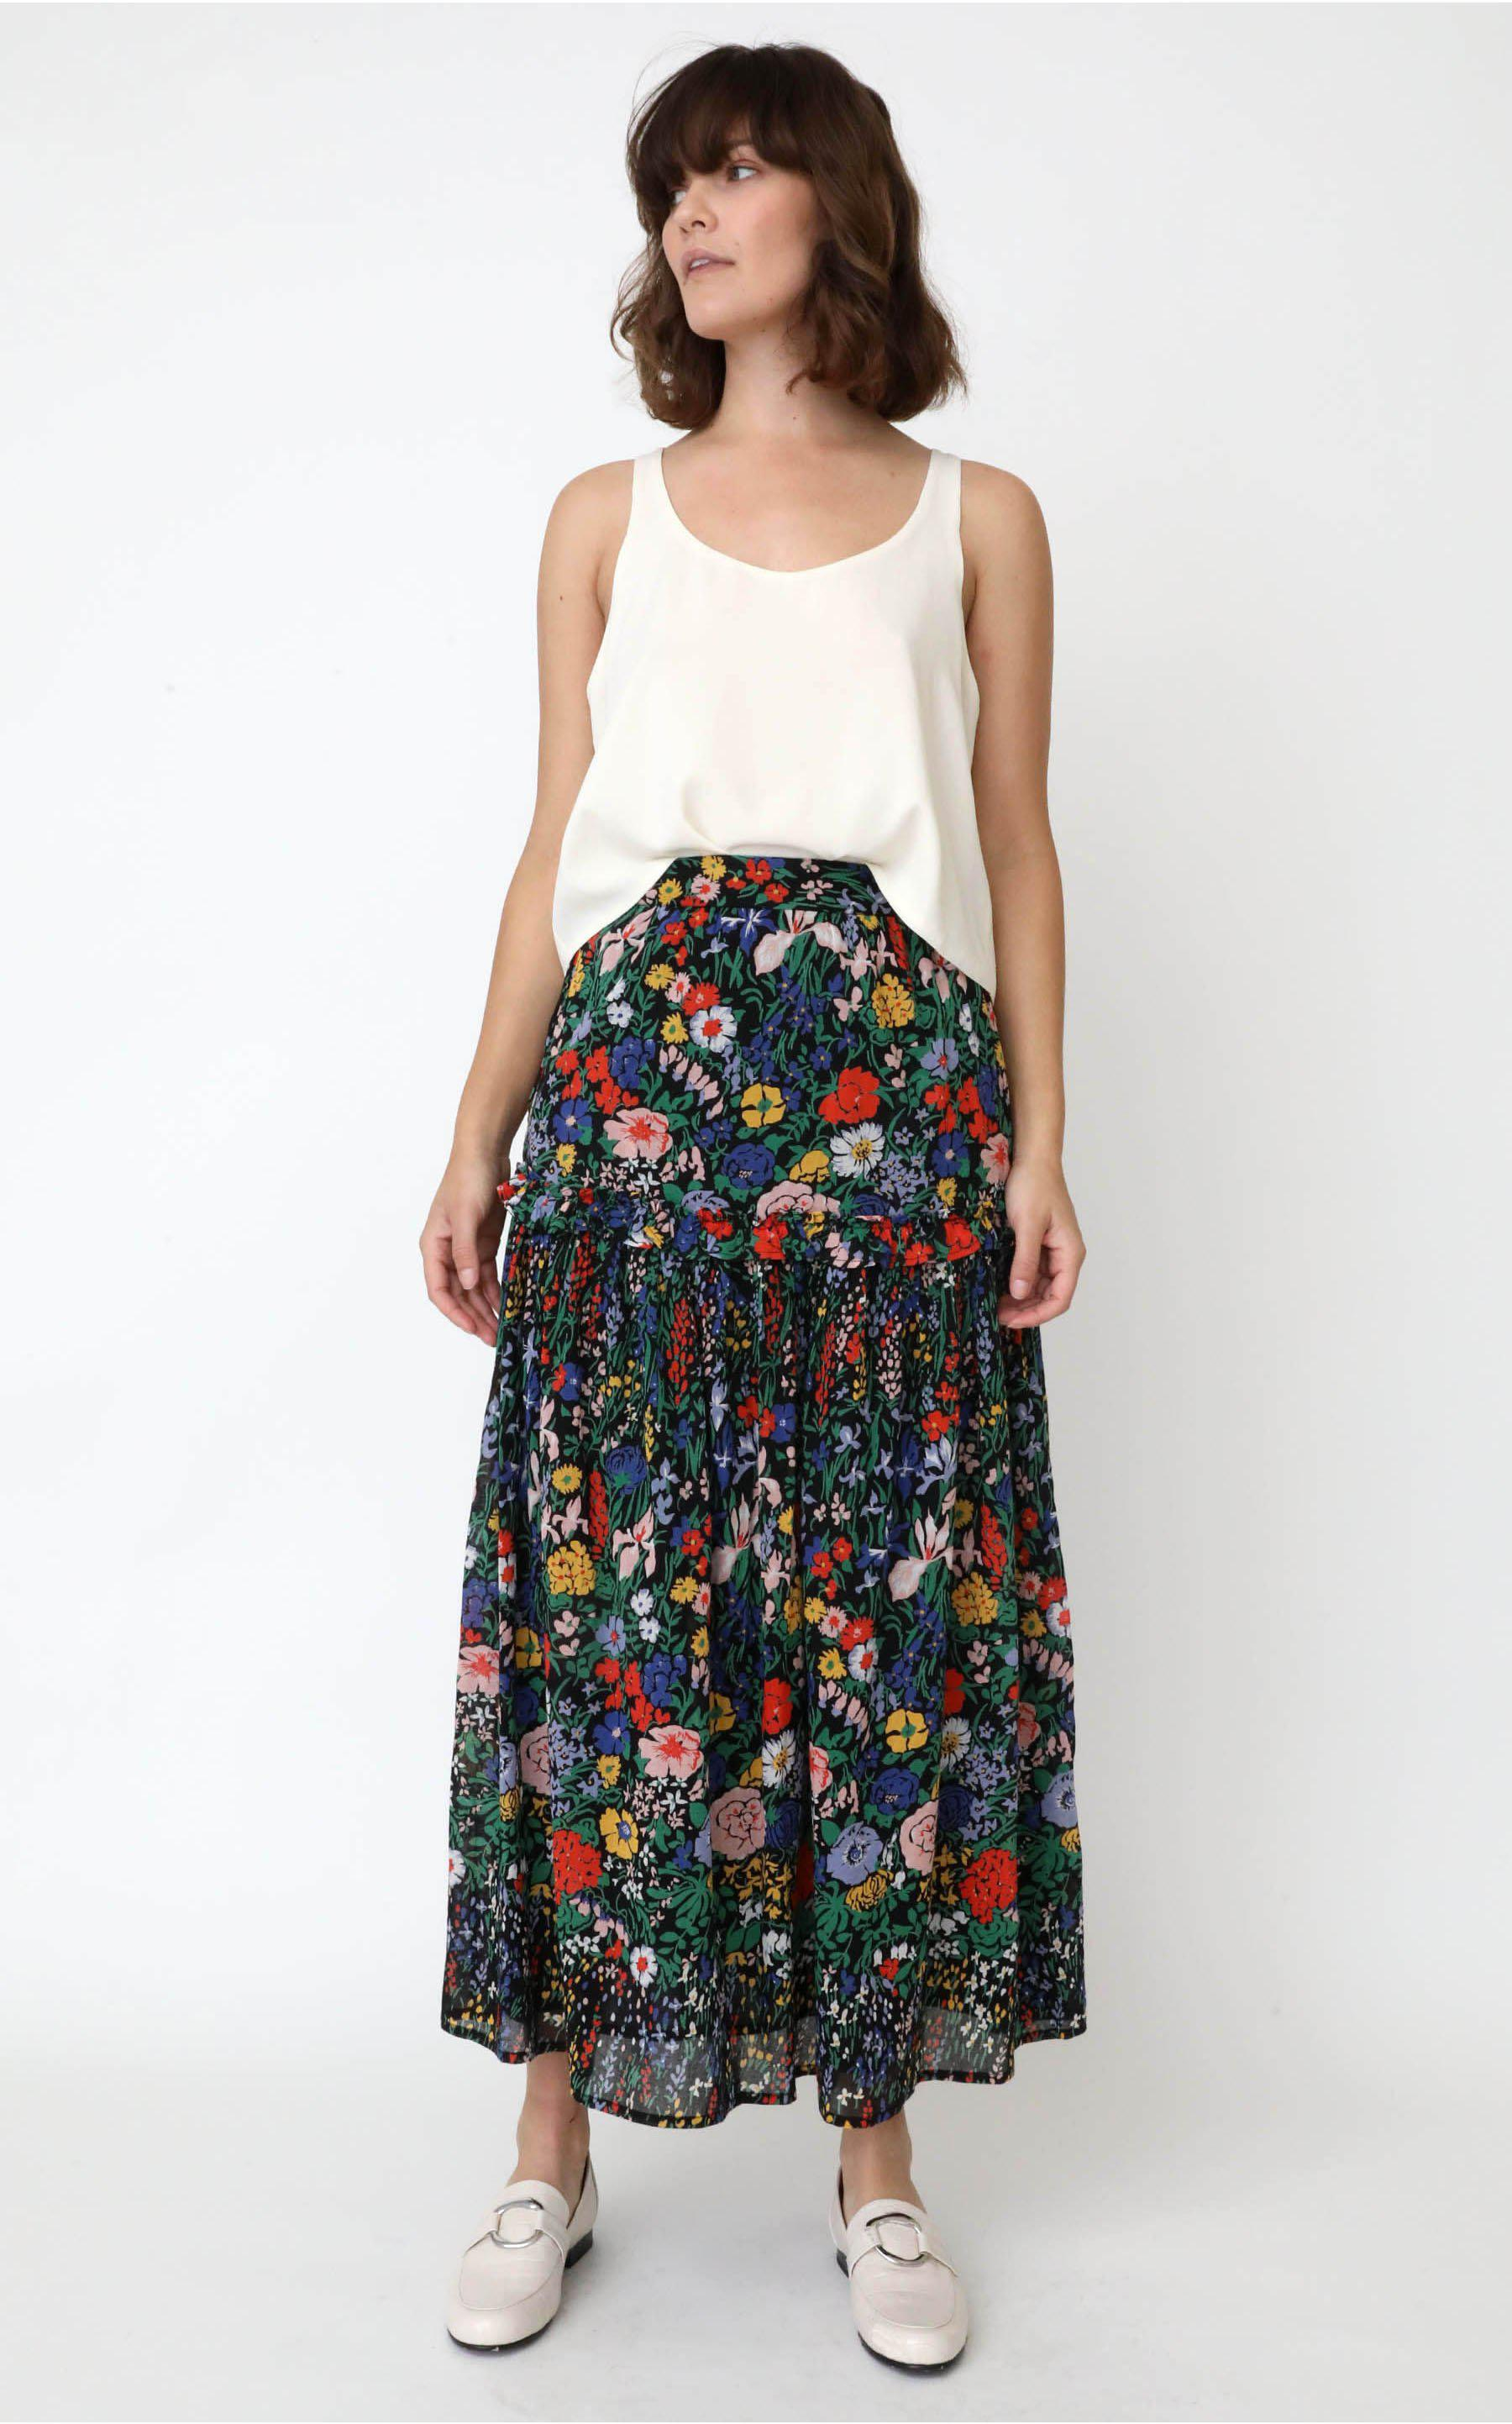 Piper Skirt Dawn Chorus Black